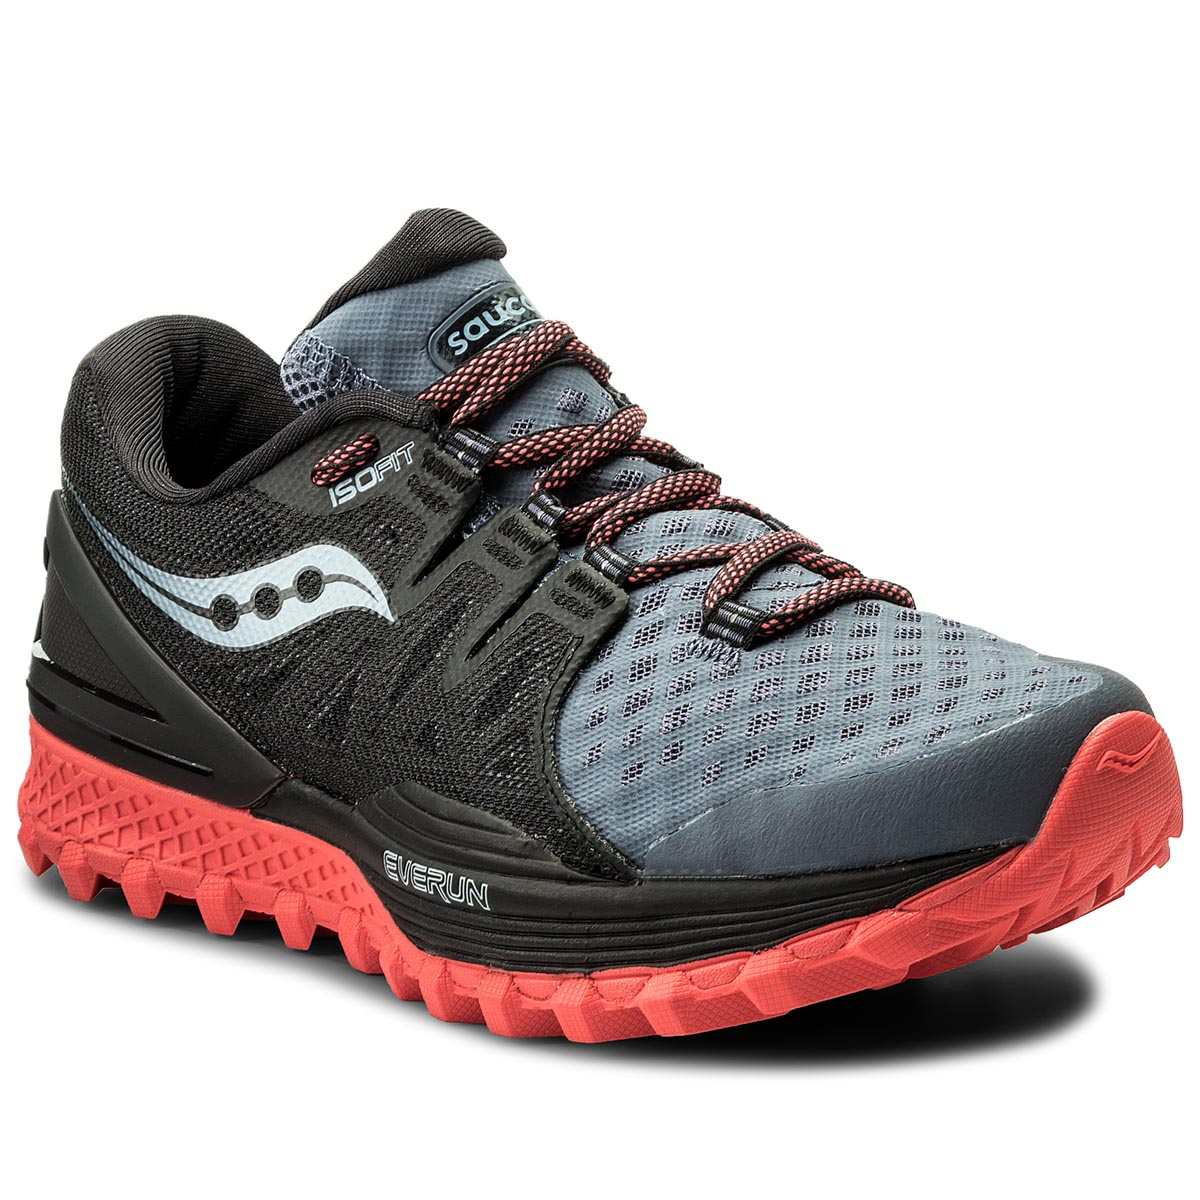 Buty SAUCONY - Xodus Iso 2 S10387-5 Gry/Blk/Vizi Red